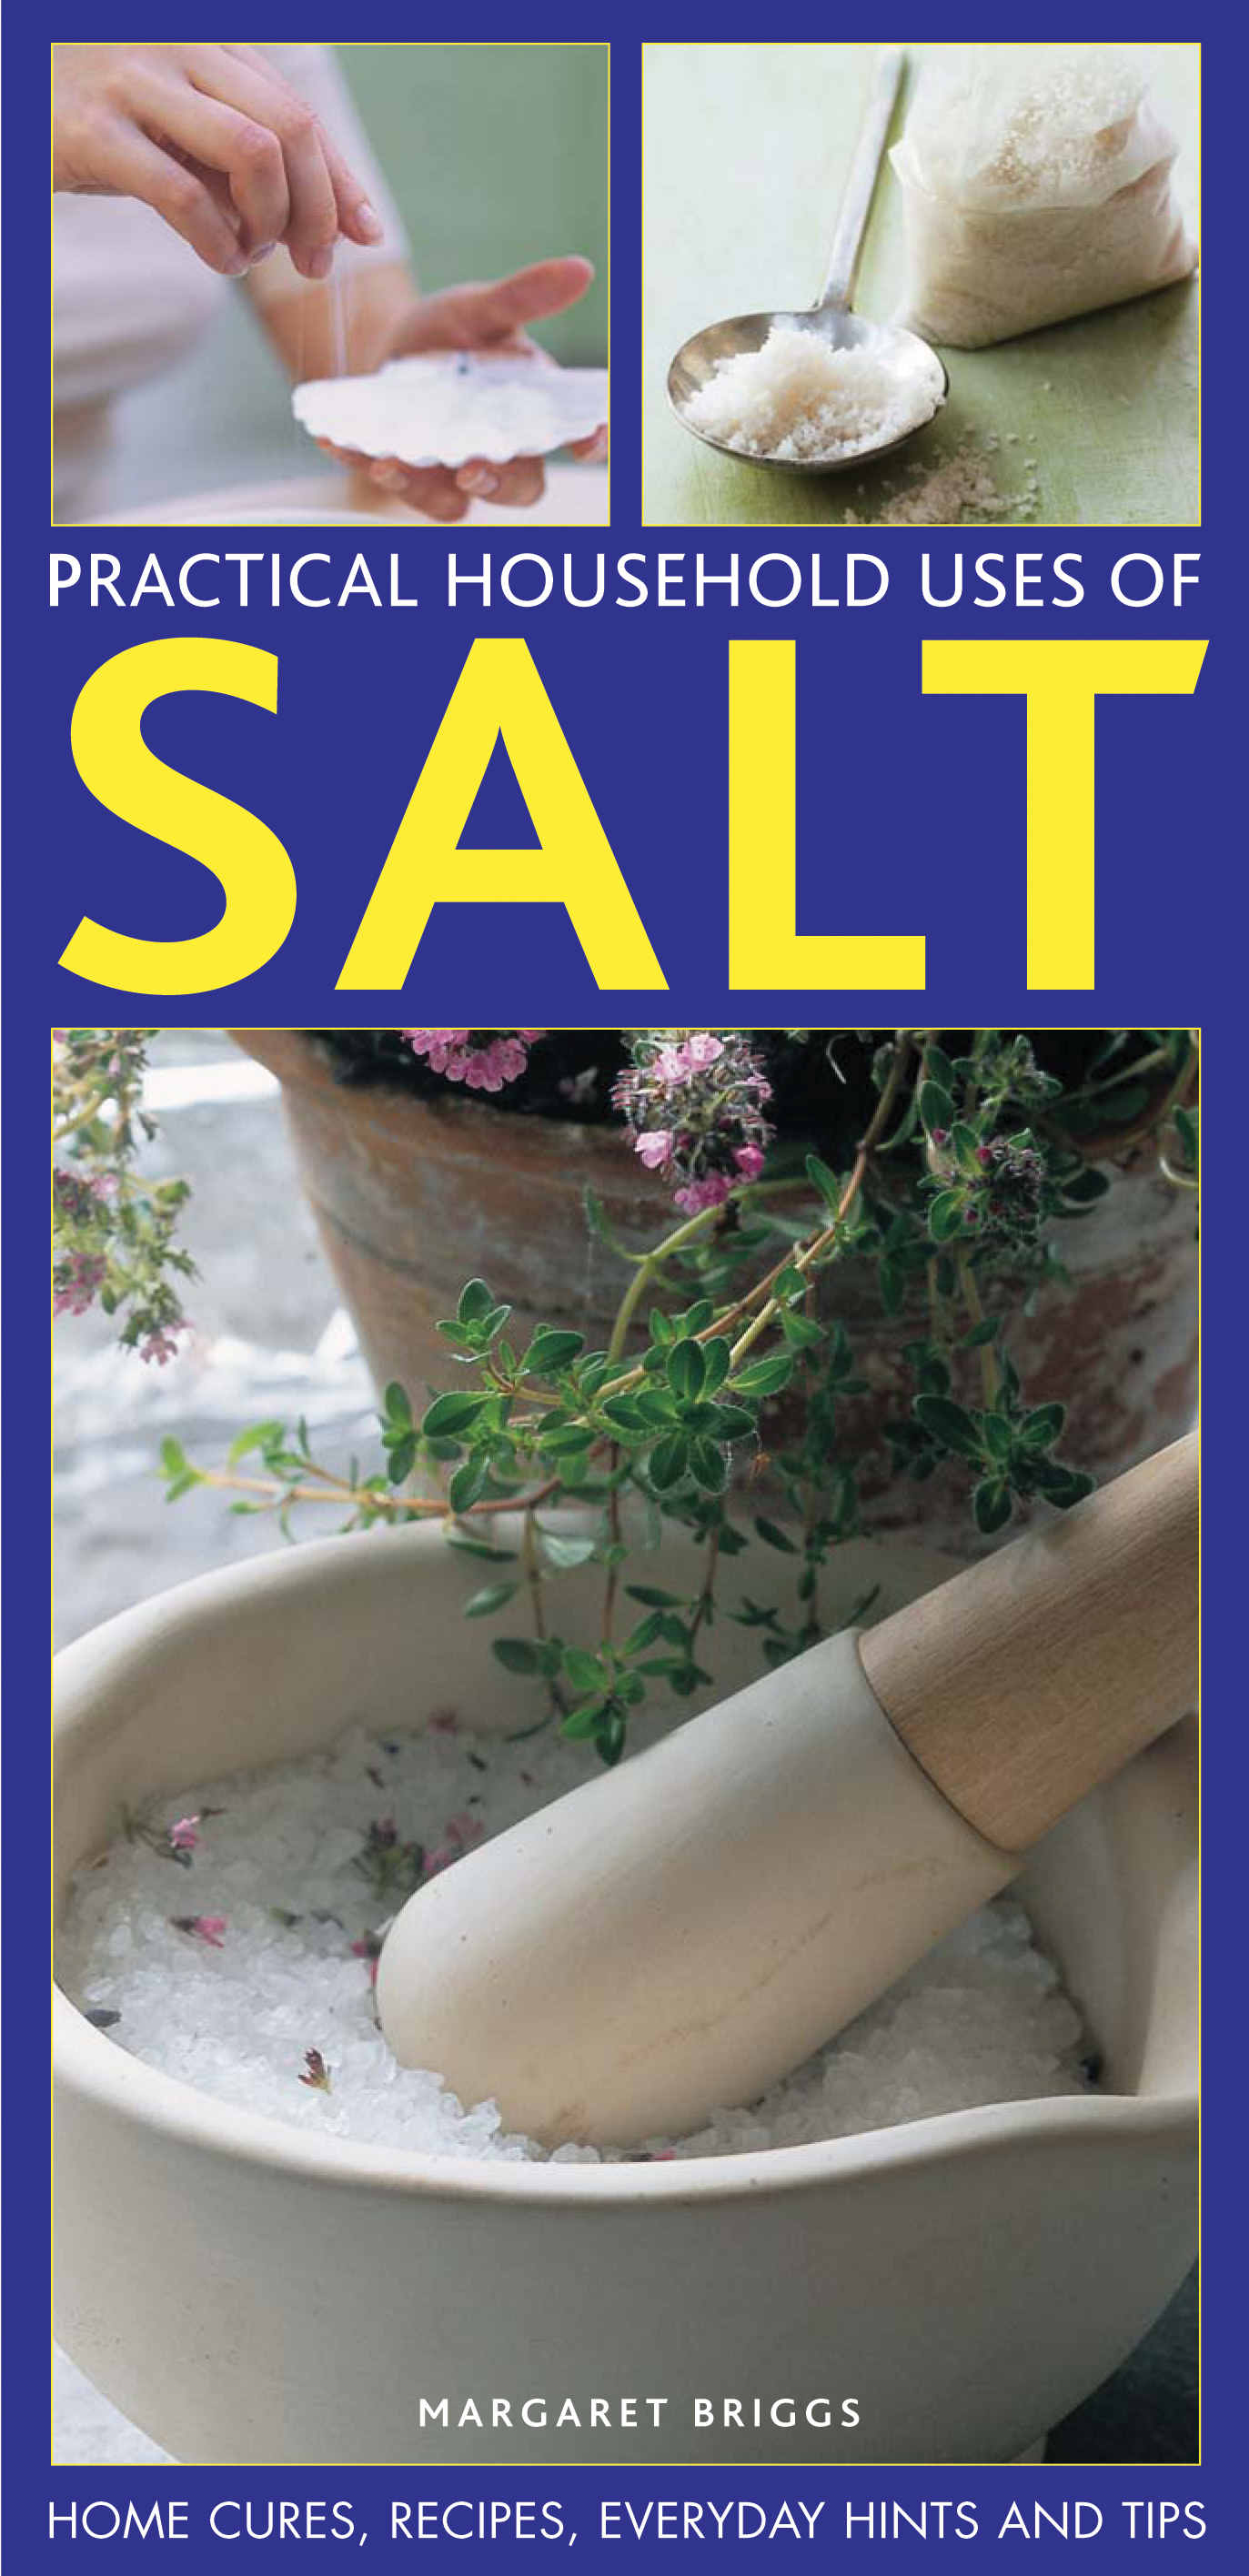 Practical Household Uses of Salt Home Cures,  Recipes,  Everyday Hints and Tips